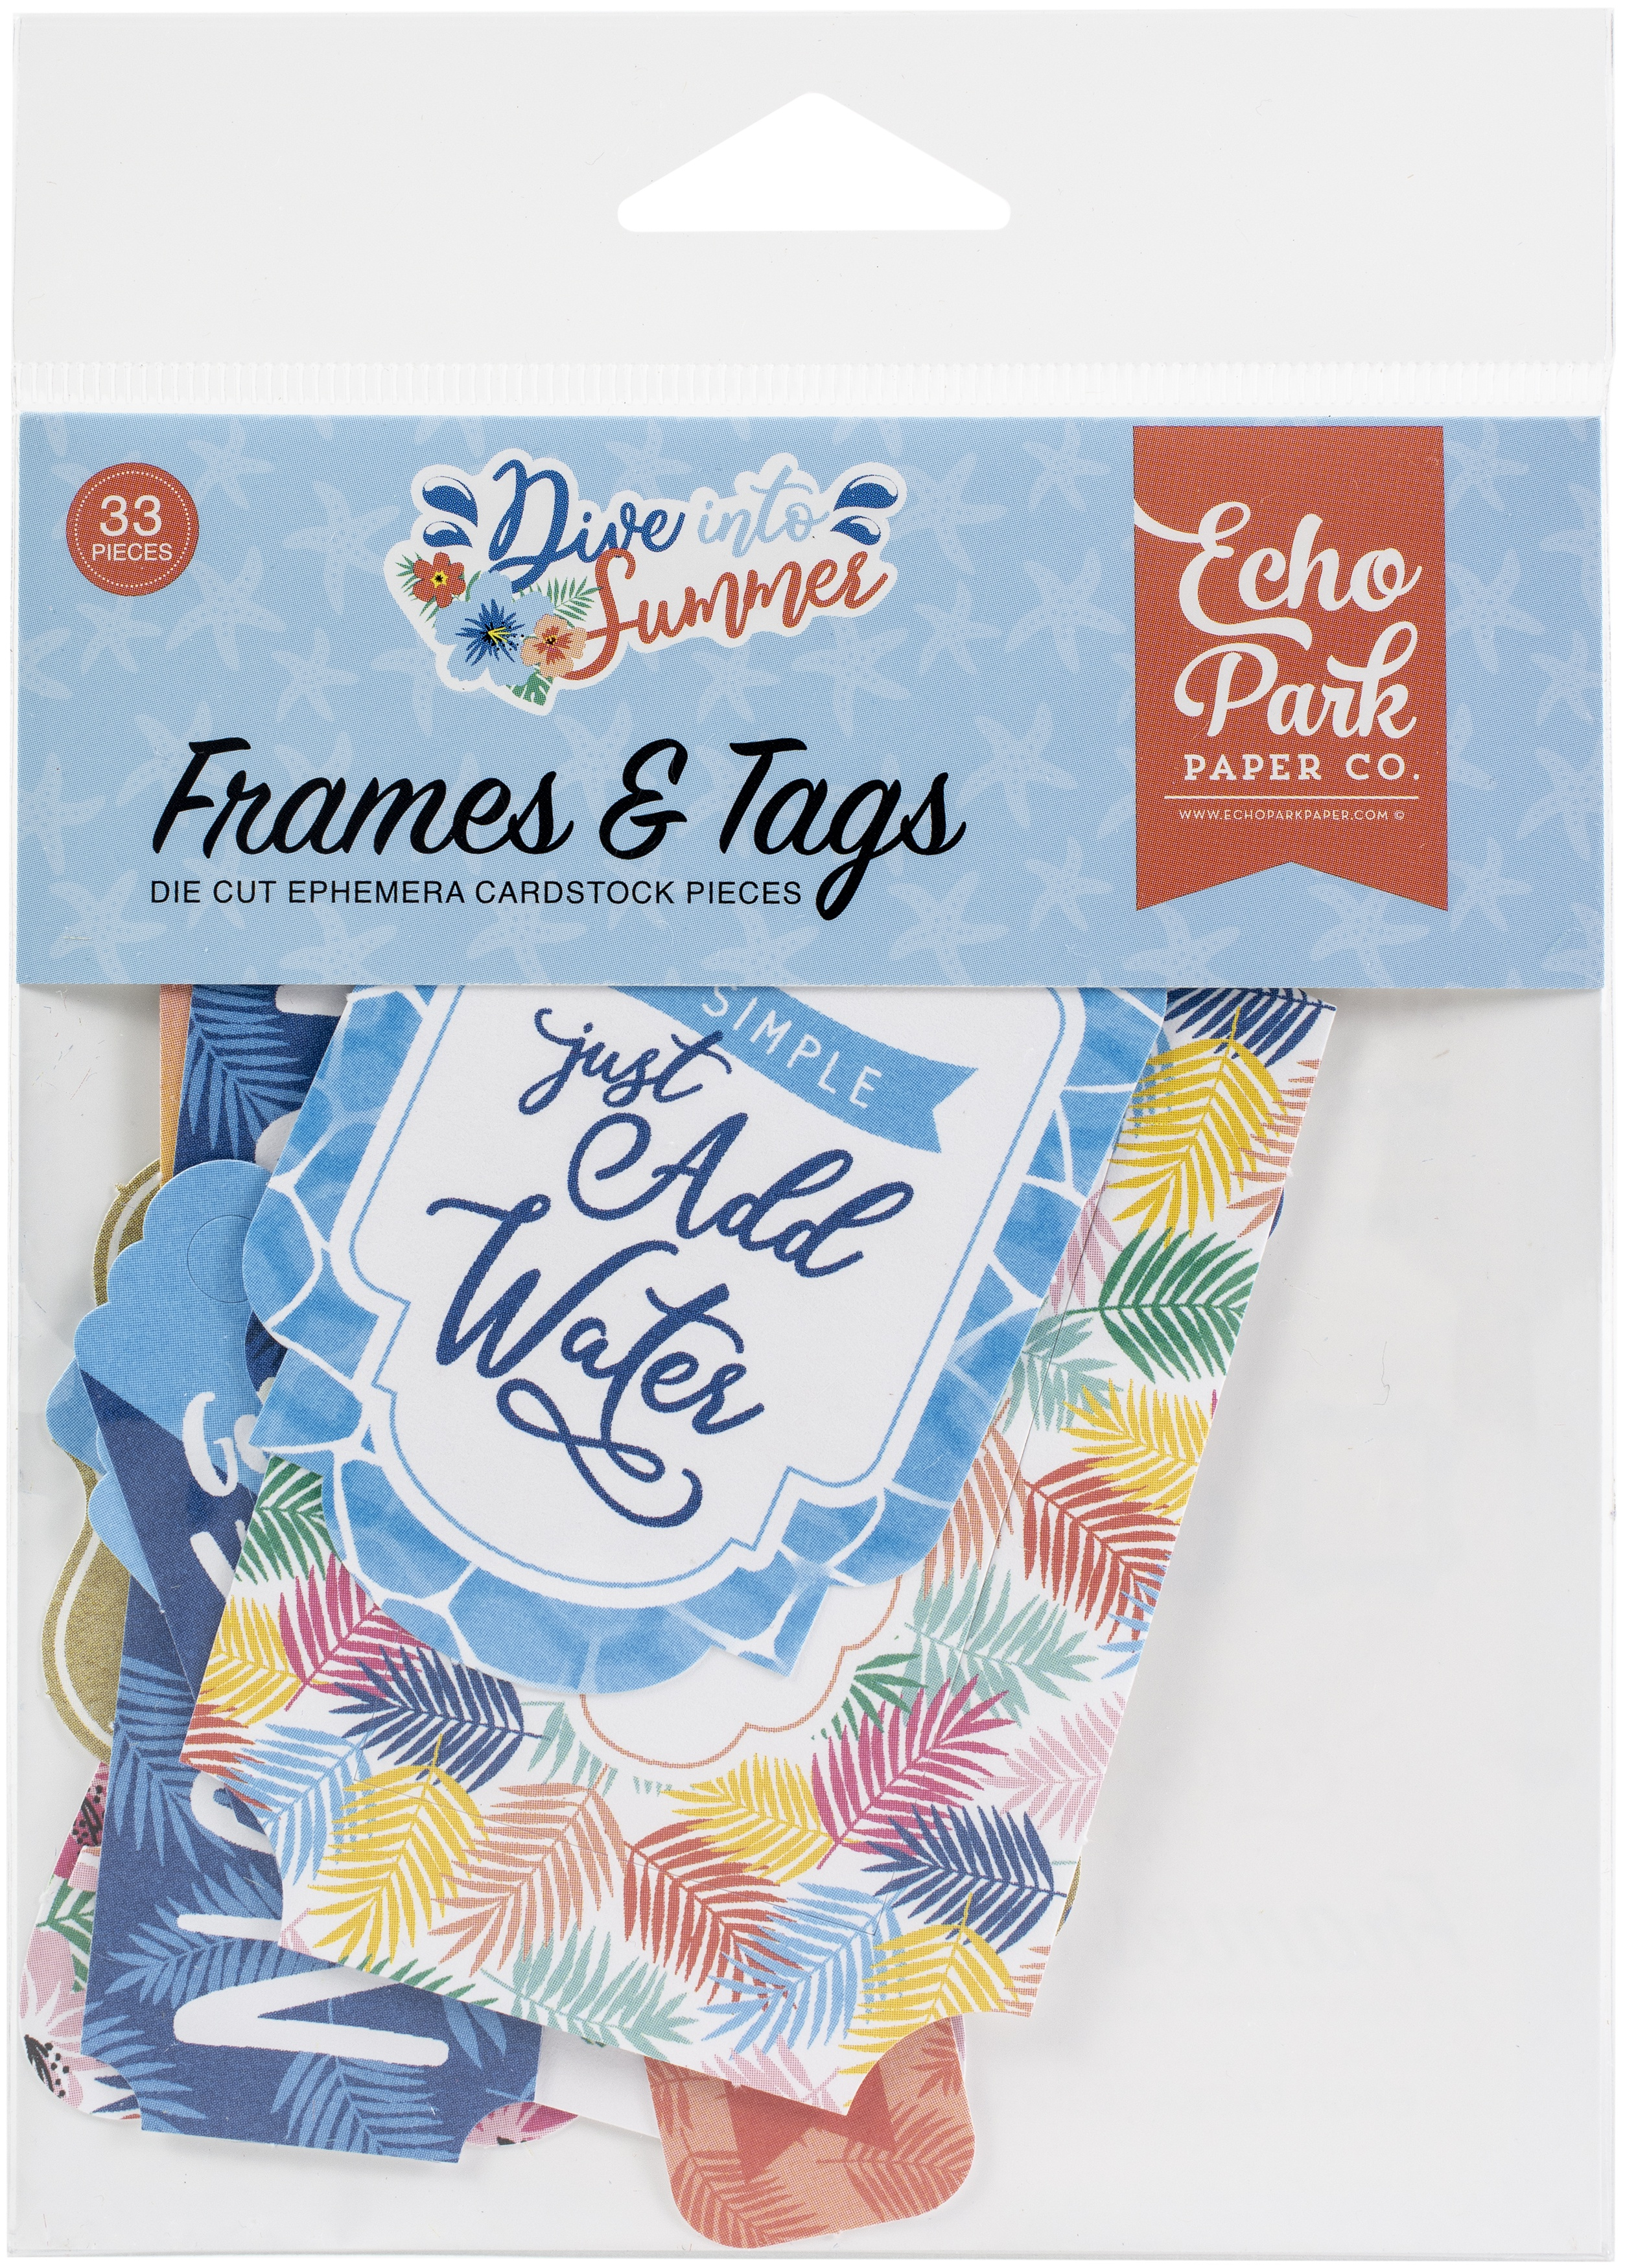 Echo Park Cardstock -Frames & Tags, Dive Into Summer